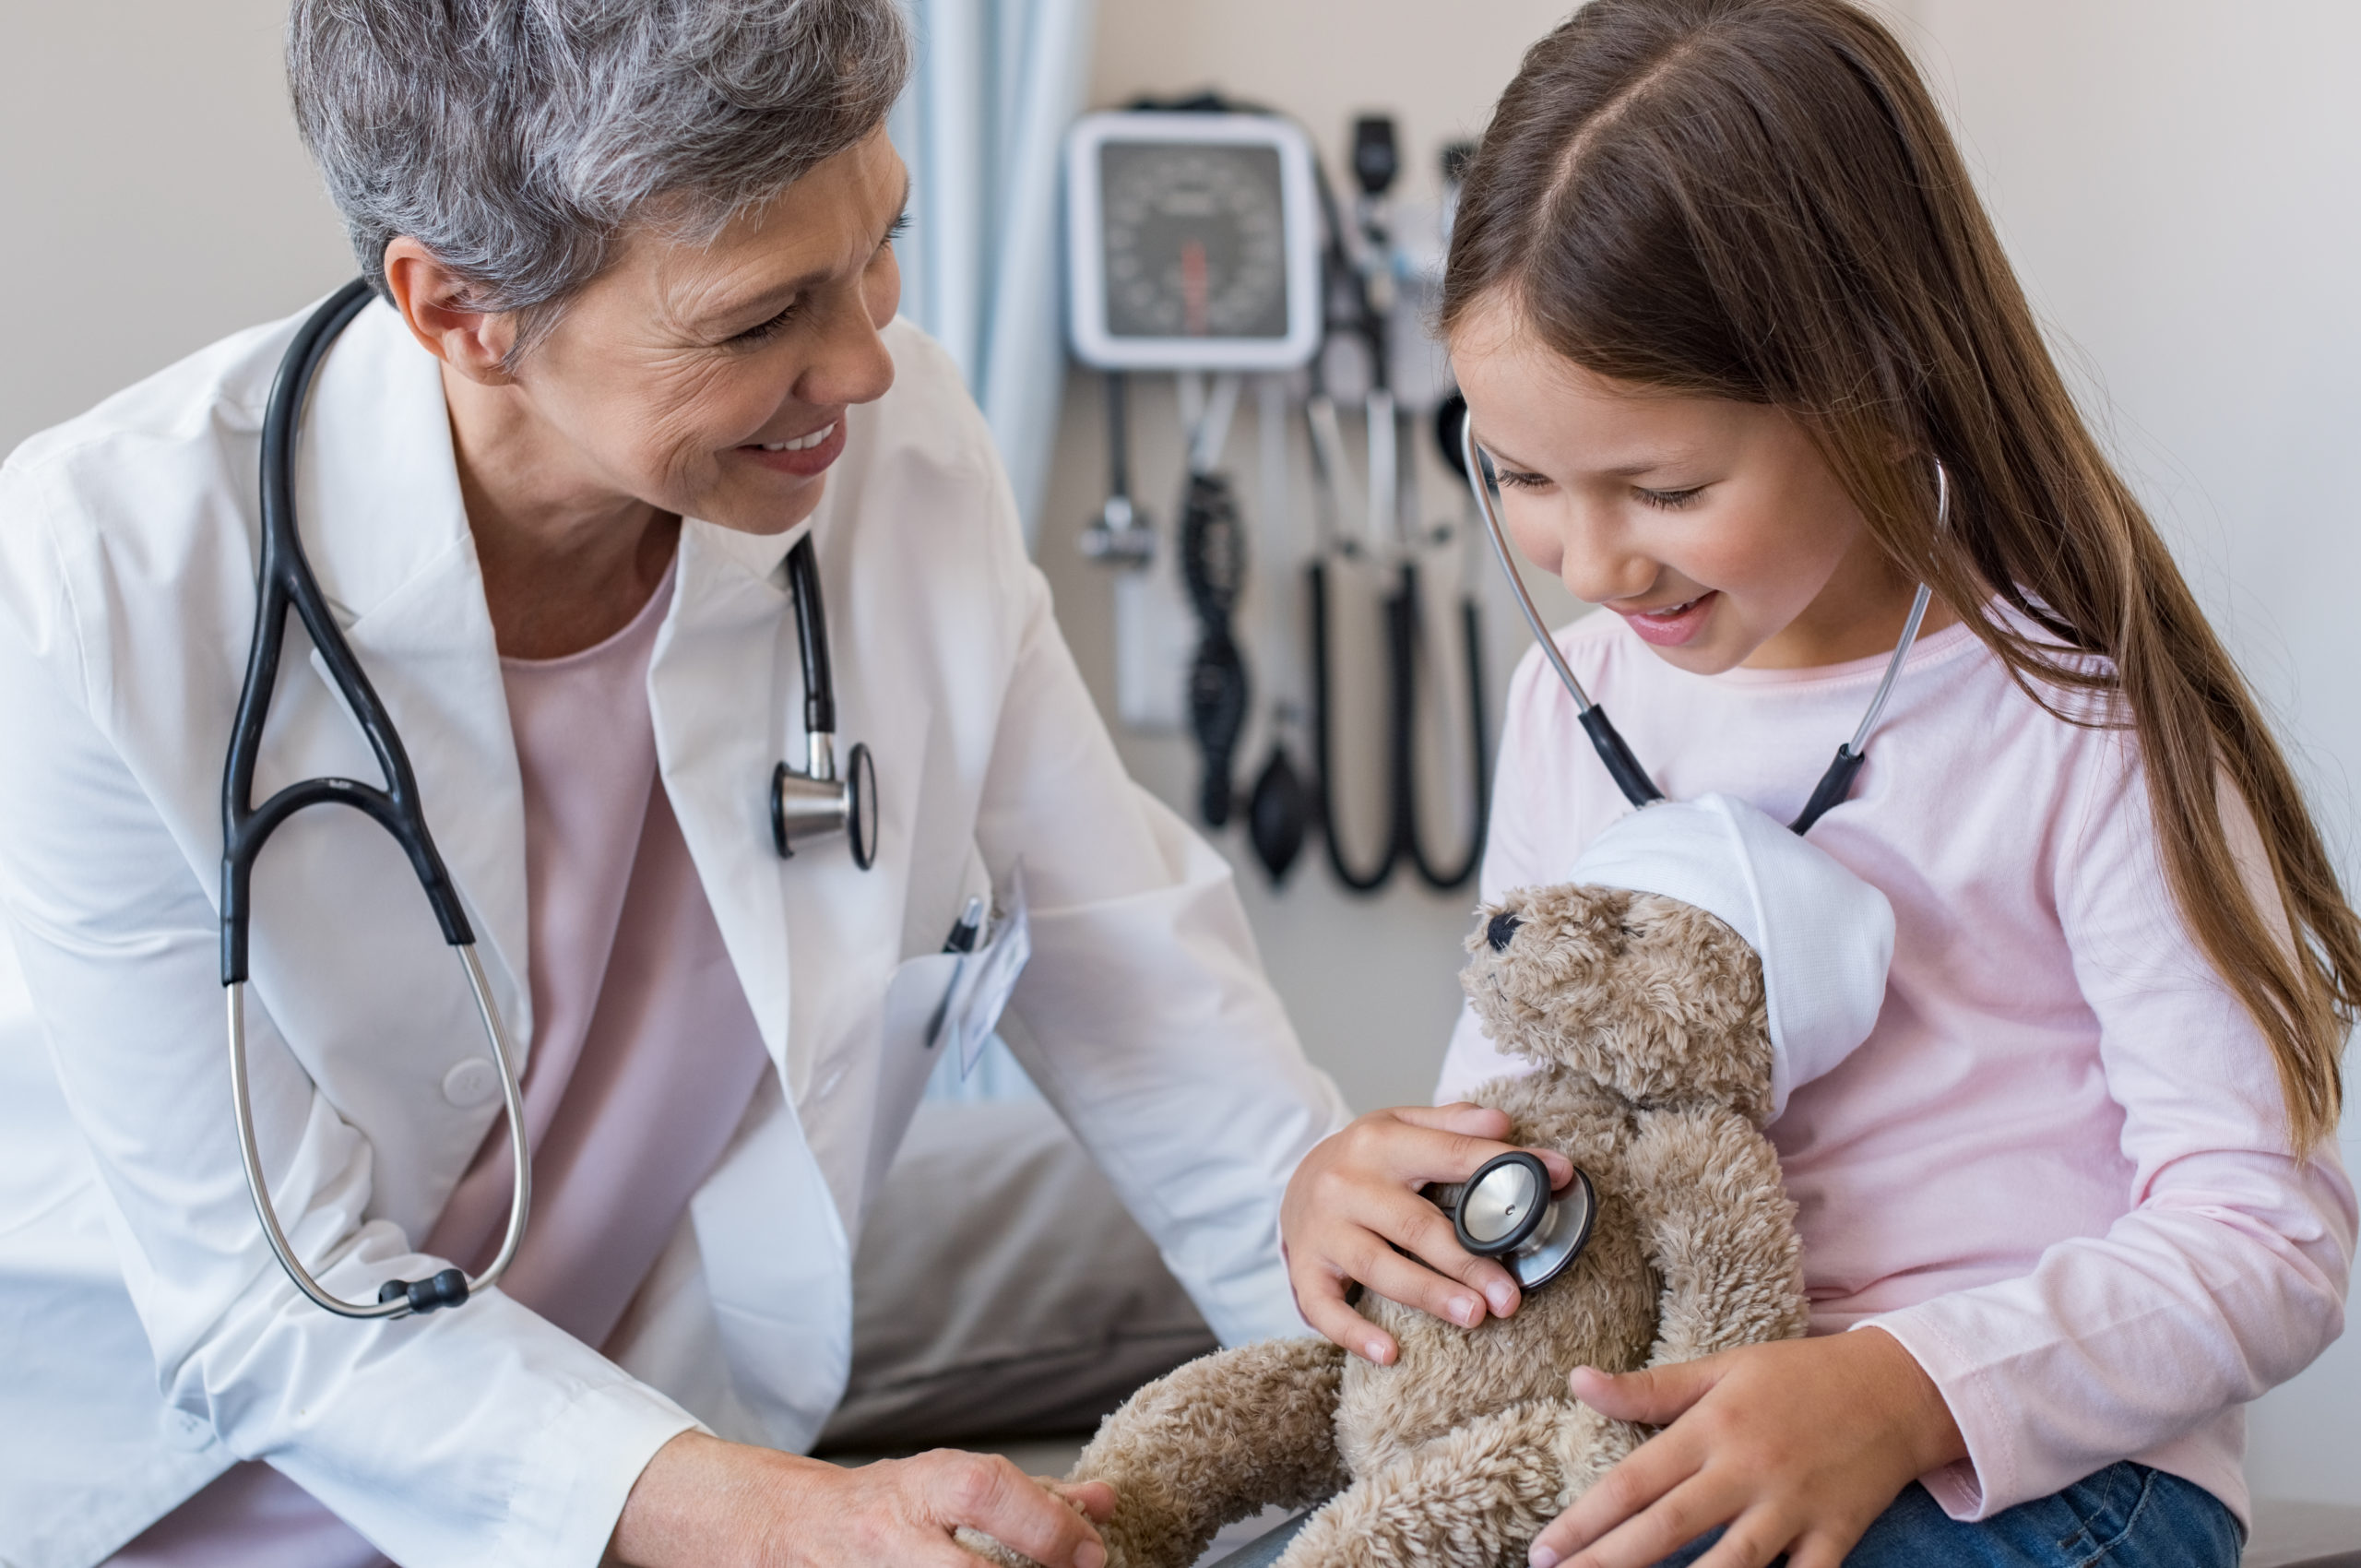 Doctor with a little girl and teddy bear